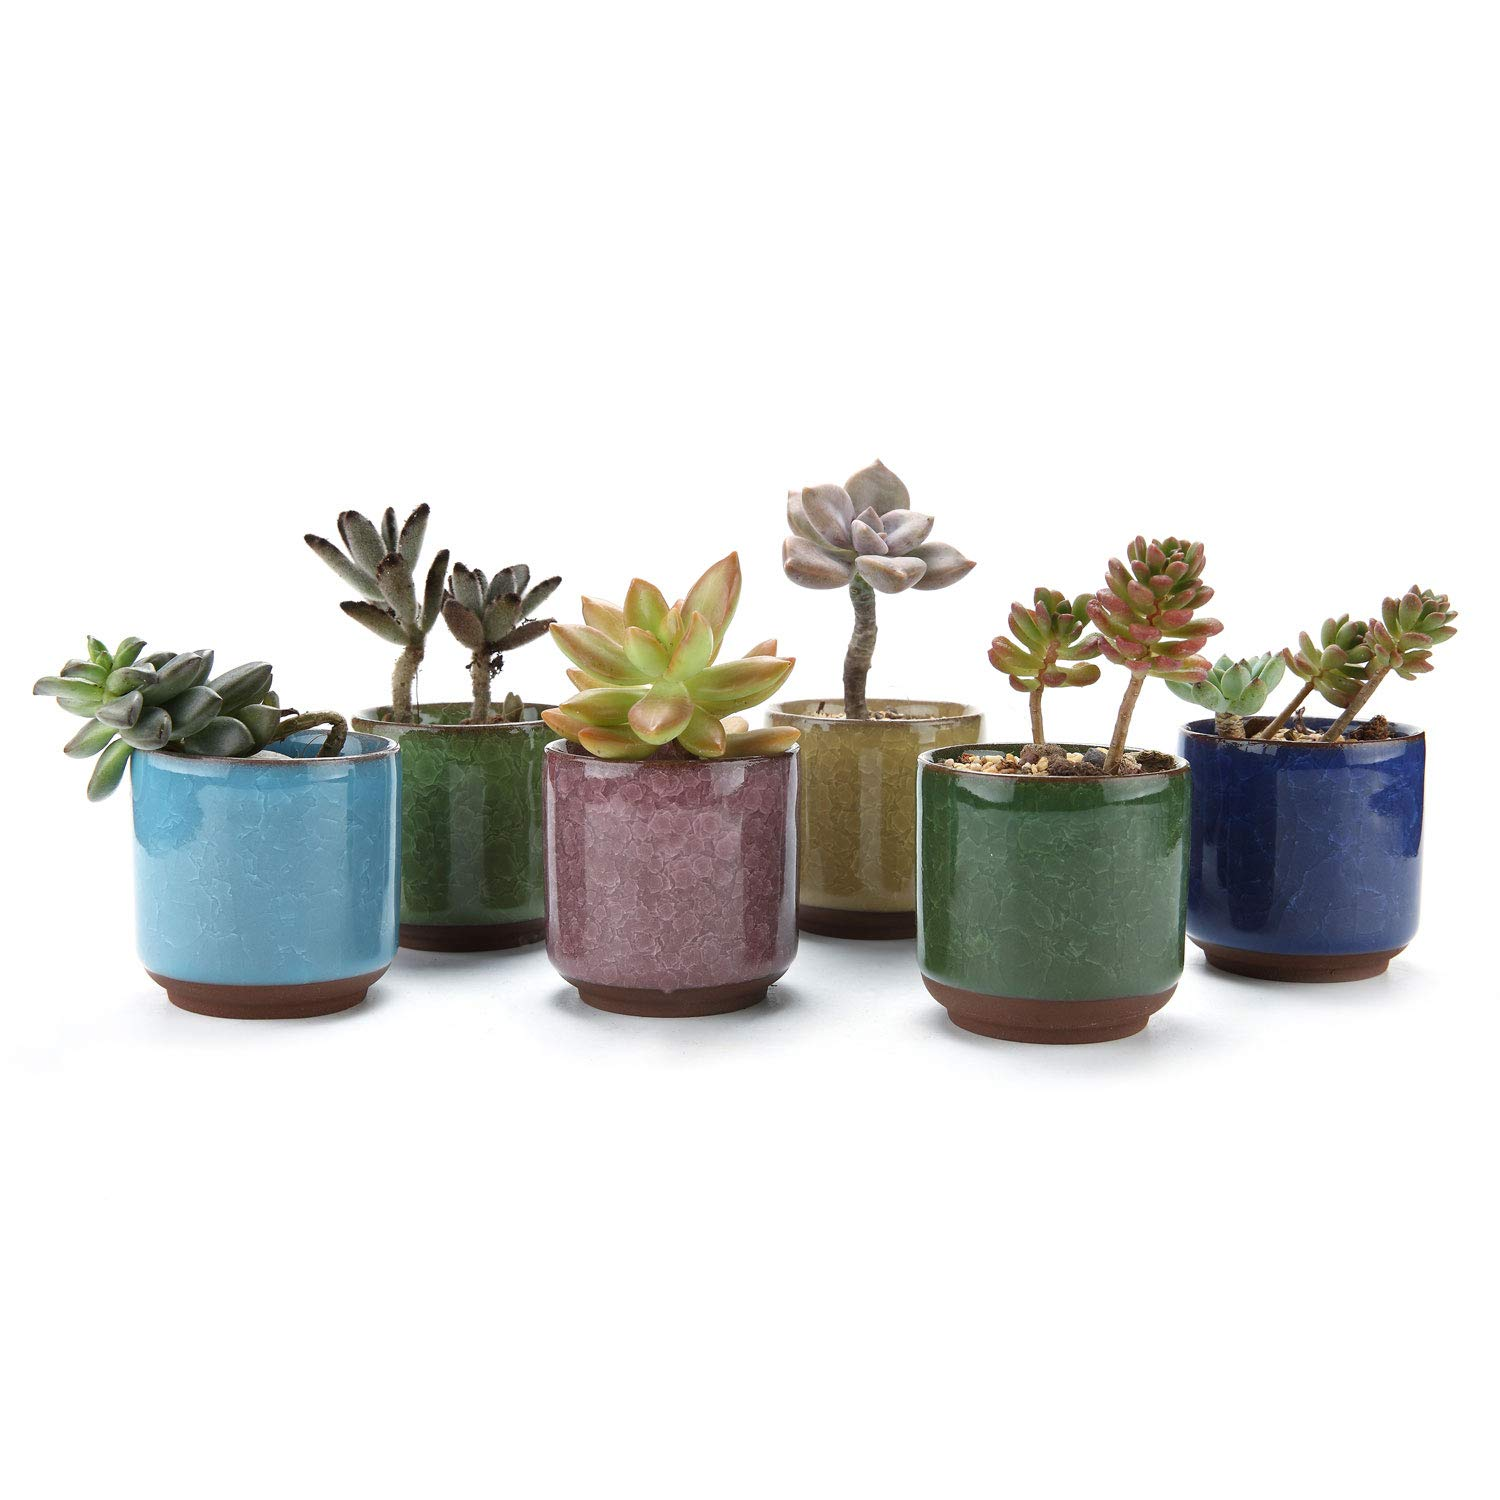 T4U 6.5CM Ceramic Ice Crack Zisha Raised Serial Succulent Plant Pot/Cactus Plant Pot  sc 1 st  Amazon UK & Small Flower Pots: Amazon.co.uk